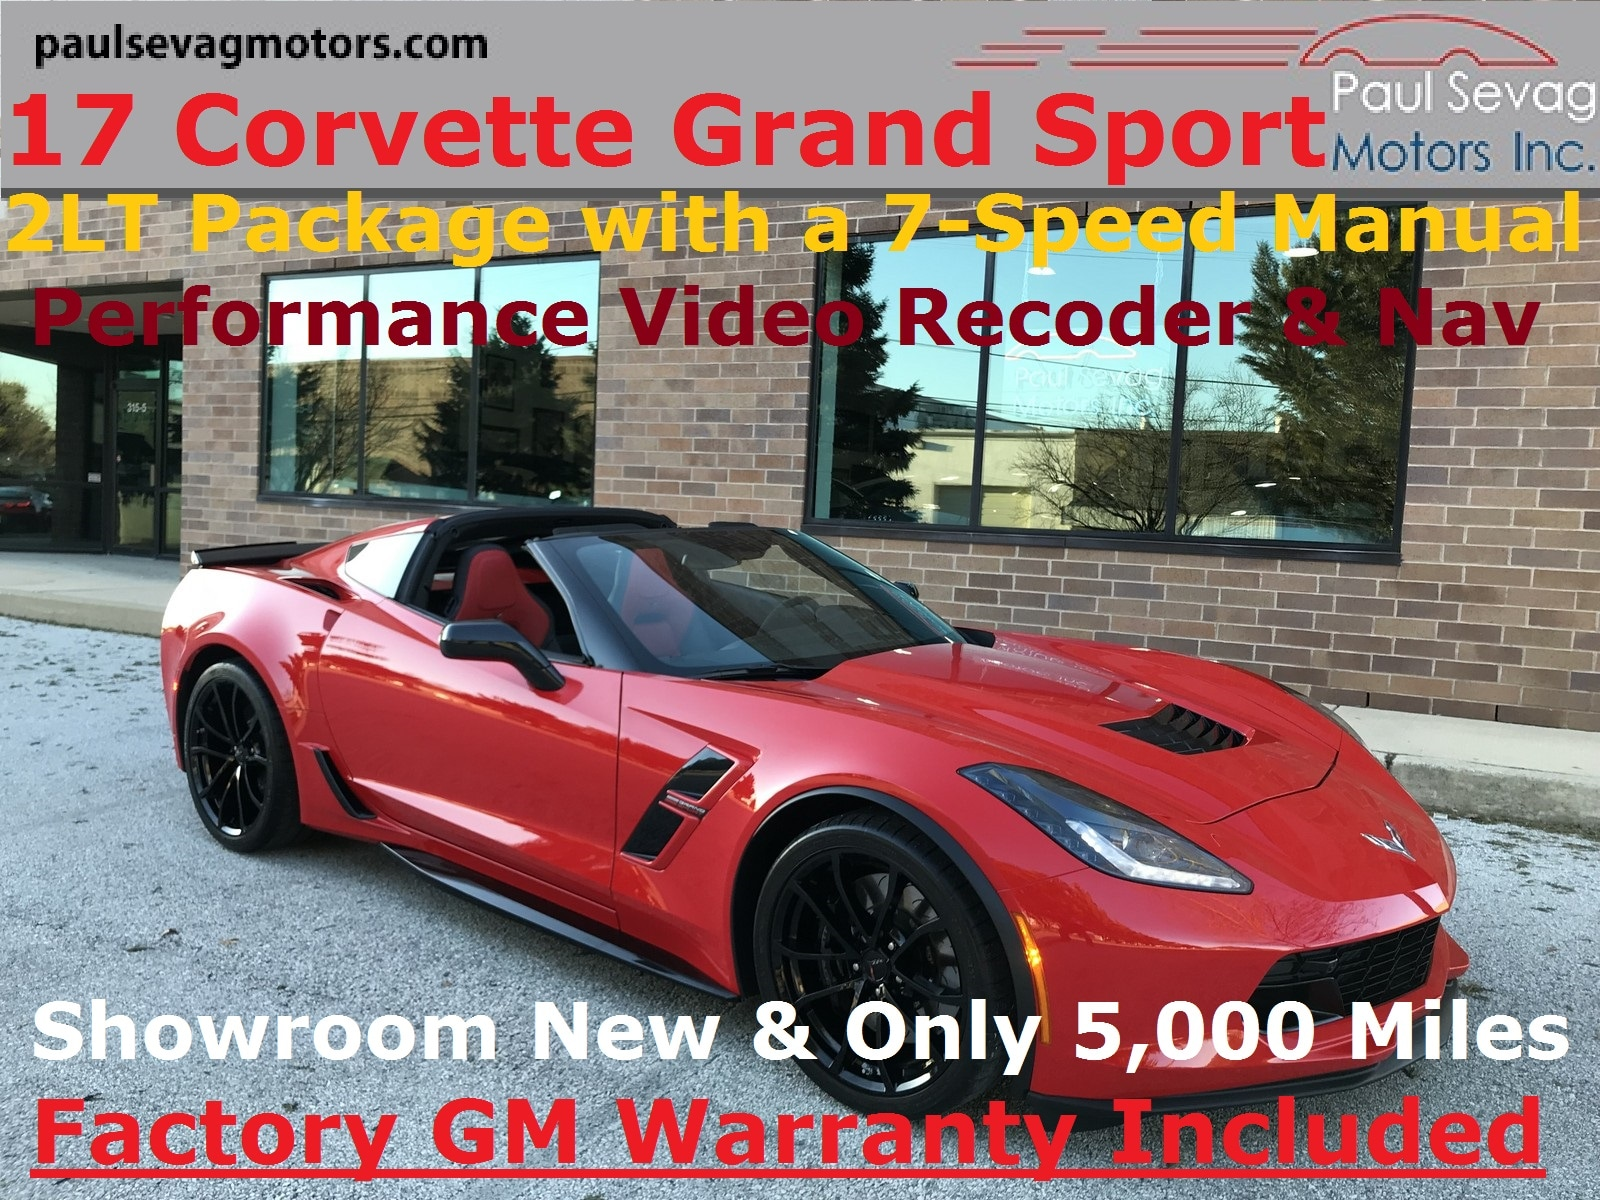 2017 Chevrolet Corvette Grand Sport Coupe 2LT 7-Speed Manual w/Performance Data/Video Record Coupe